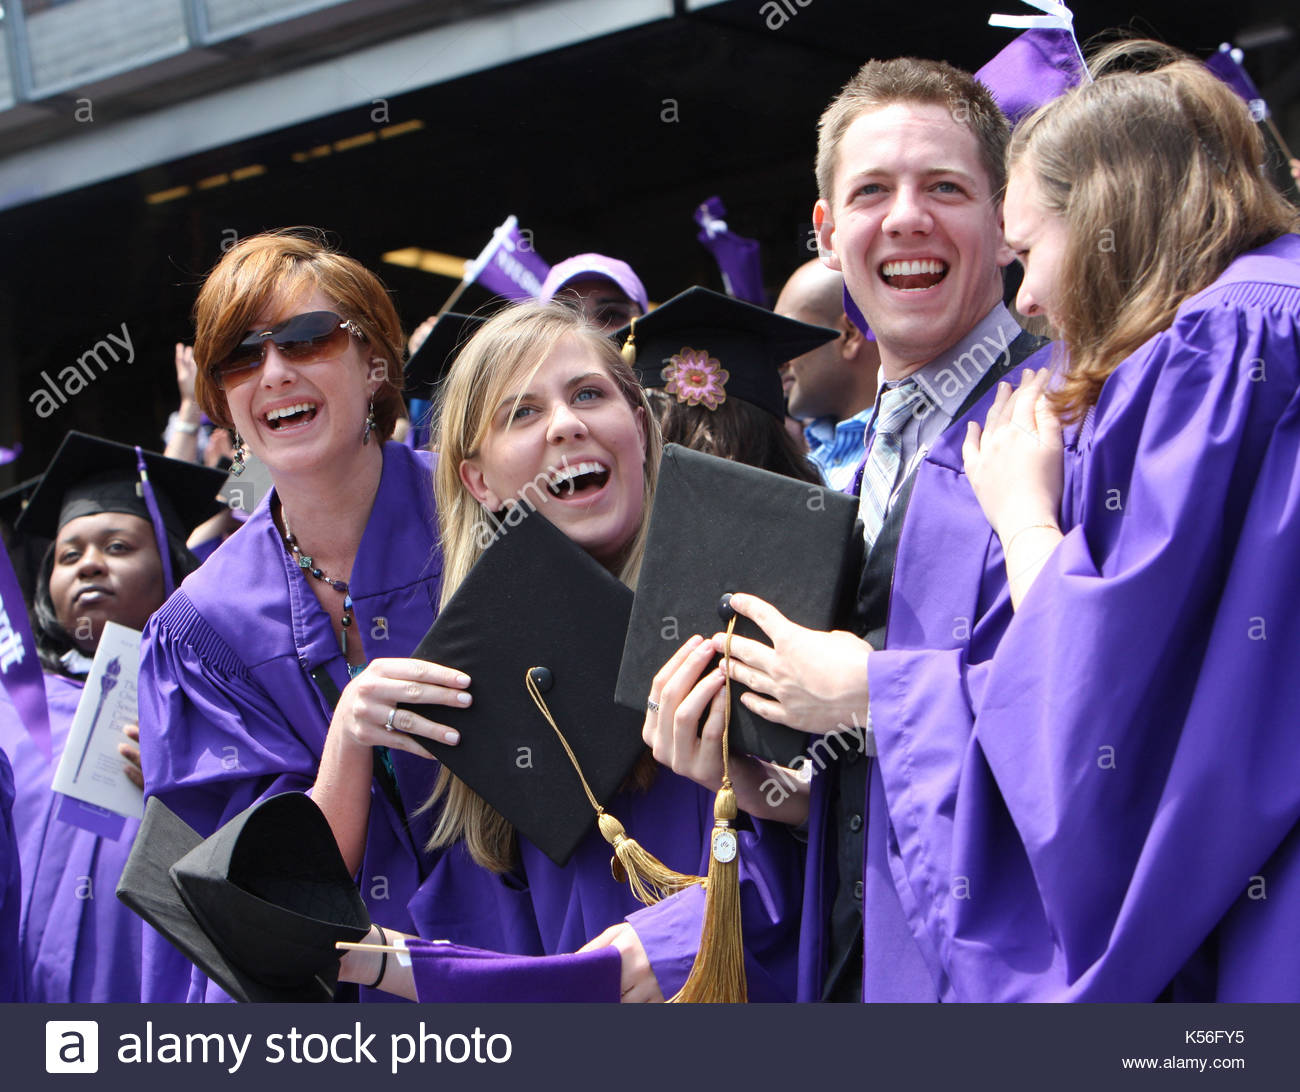 Purple And Black Grduation Gown Stock Photos & Purple And Black ...